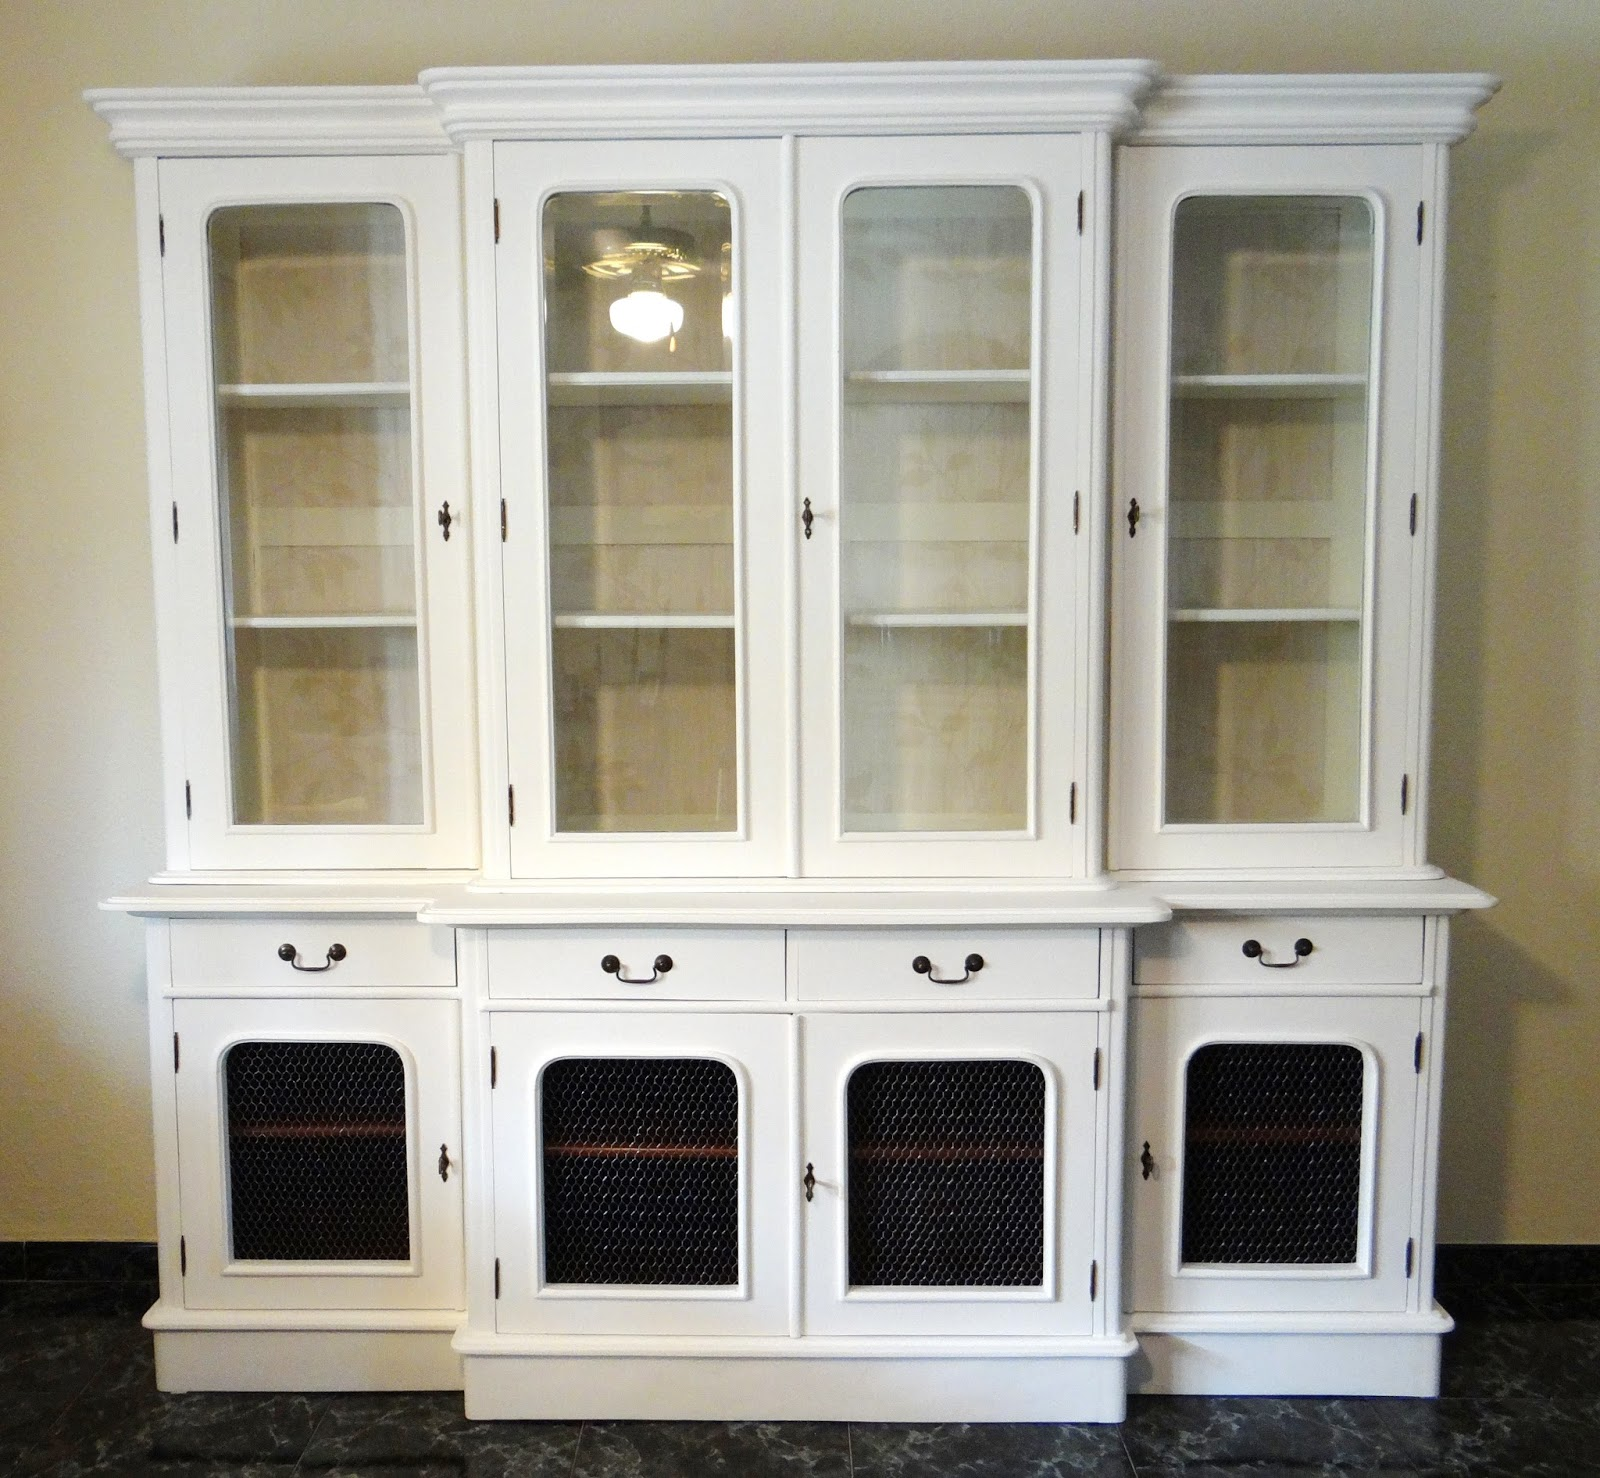 Muebles Salon Blanco Roto Muebles Salon Blanco Roto Fabulous De Saln Cm With